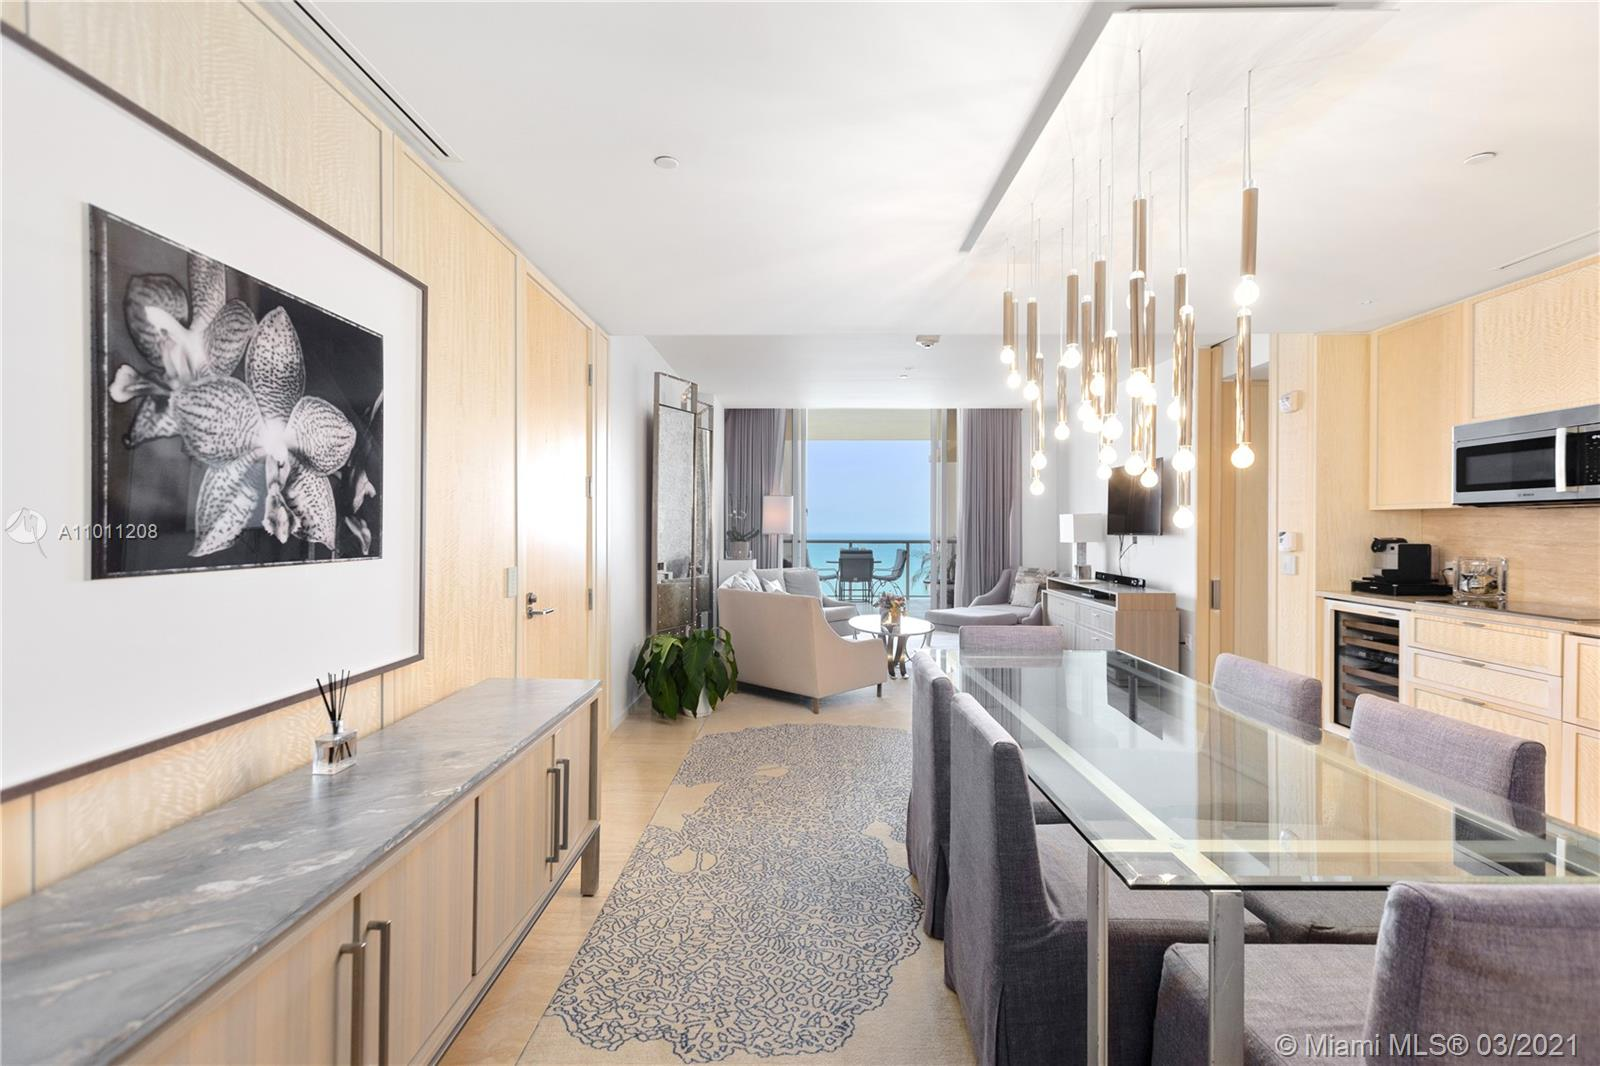 "This is a unique 2103 sqft ""Royal Suite"" 2beds/3baths in the most exclusive 5 stars Hotel "" The St Regis"". This unit features a spacious living room with an open kitchen and dining area, a Master Bedroom with a large walk-in closet & a private bathroom, and a second bedroom with private bathroom & it's own kitchenette. All rooms have a terrace and an amazing view of the Pristine Blue waters. Enjoy the exclusive amenities at St. Regis including a private residence Pool, a Remede Spa, Pristine Beachfront service, Gym, Bars, Restaurants, Room service, Art Gallery, Valet and much more… Located across the street from the world famous Bal Harbour Shops and top restaurants and attractions. Owner Motivated!"